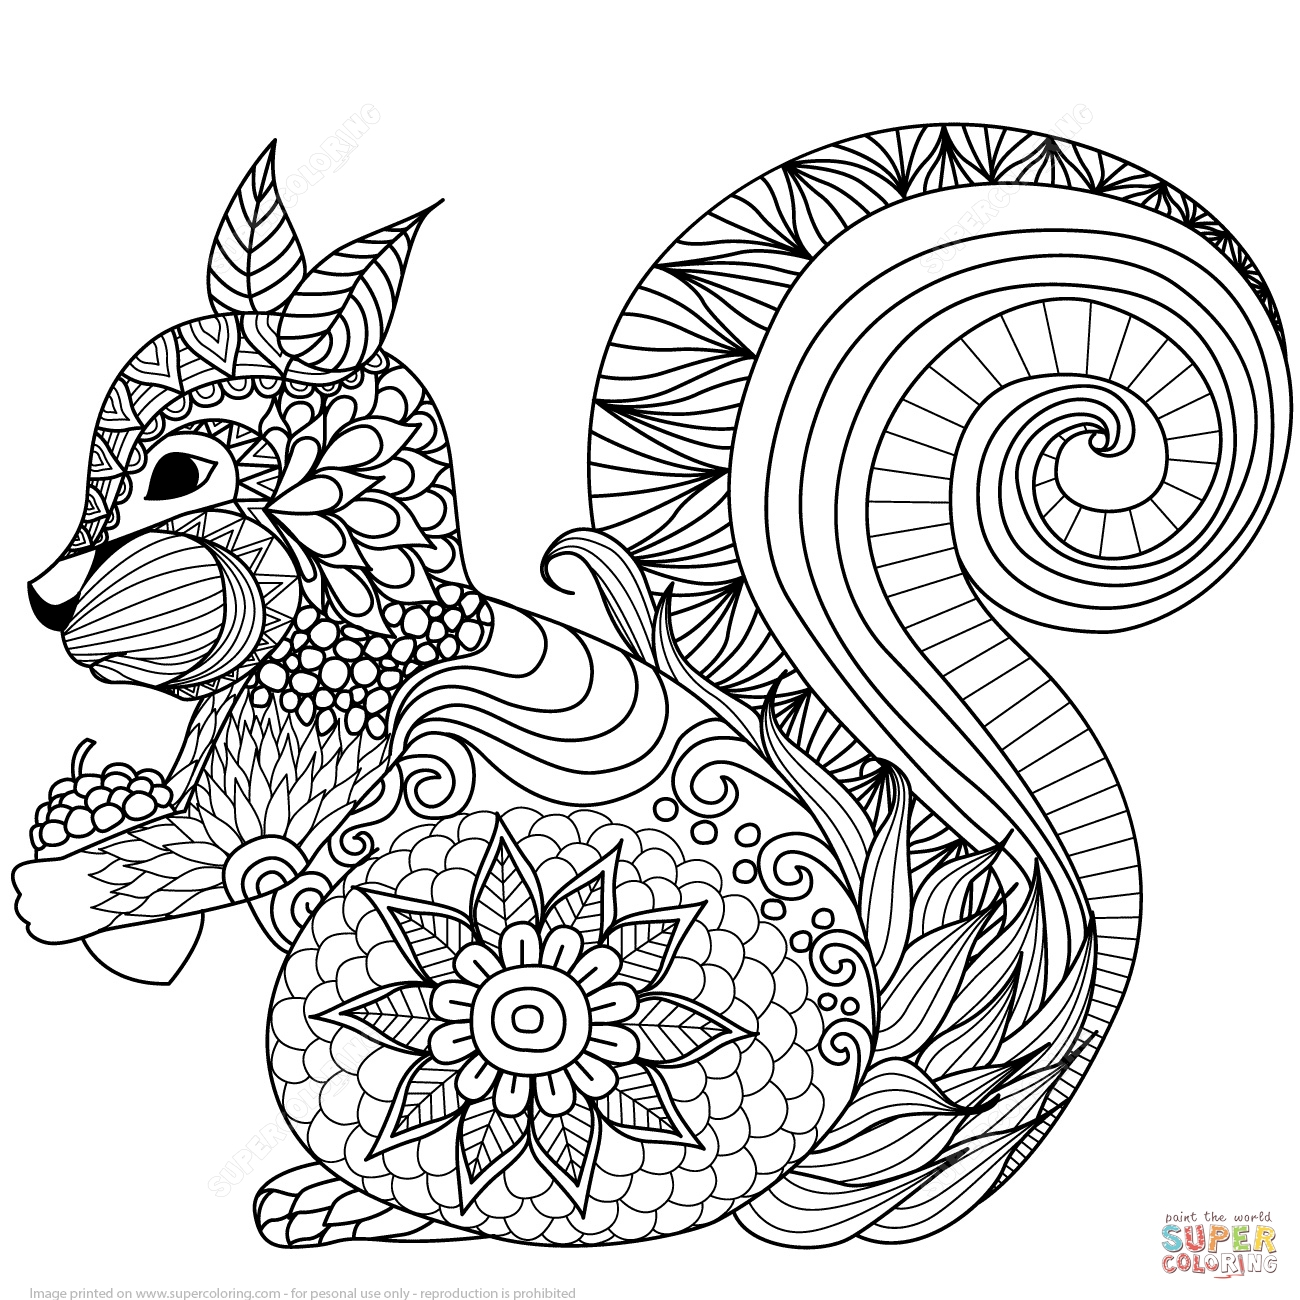 coloring book for kids lol surprise free coloring image pages for kids for kids book coloring